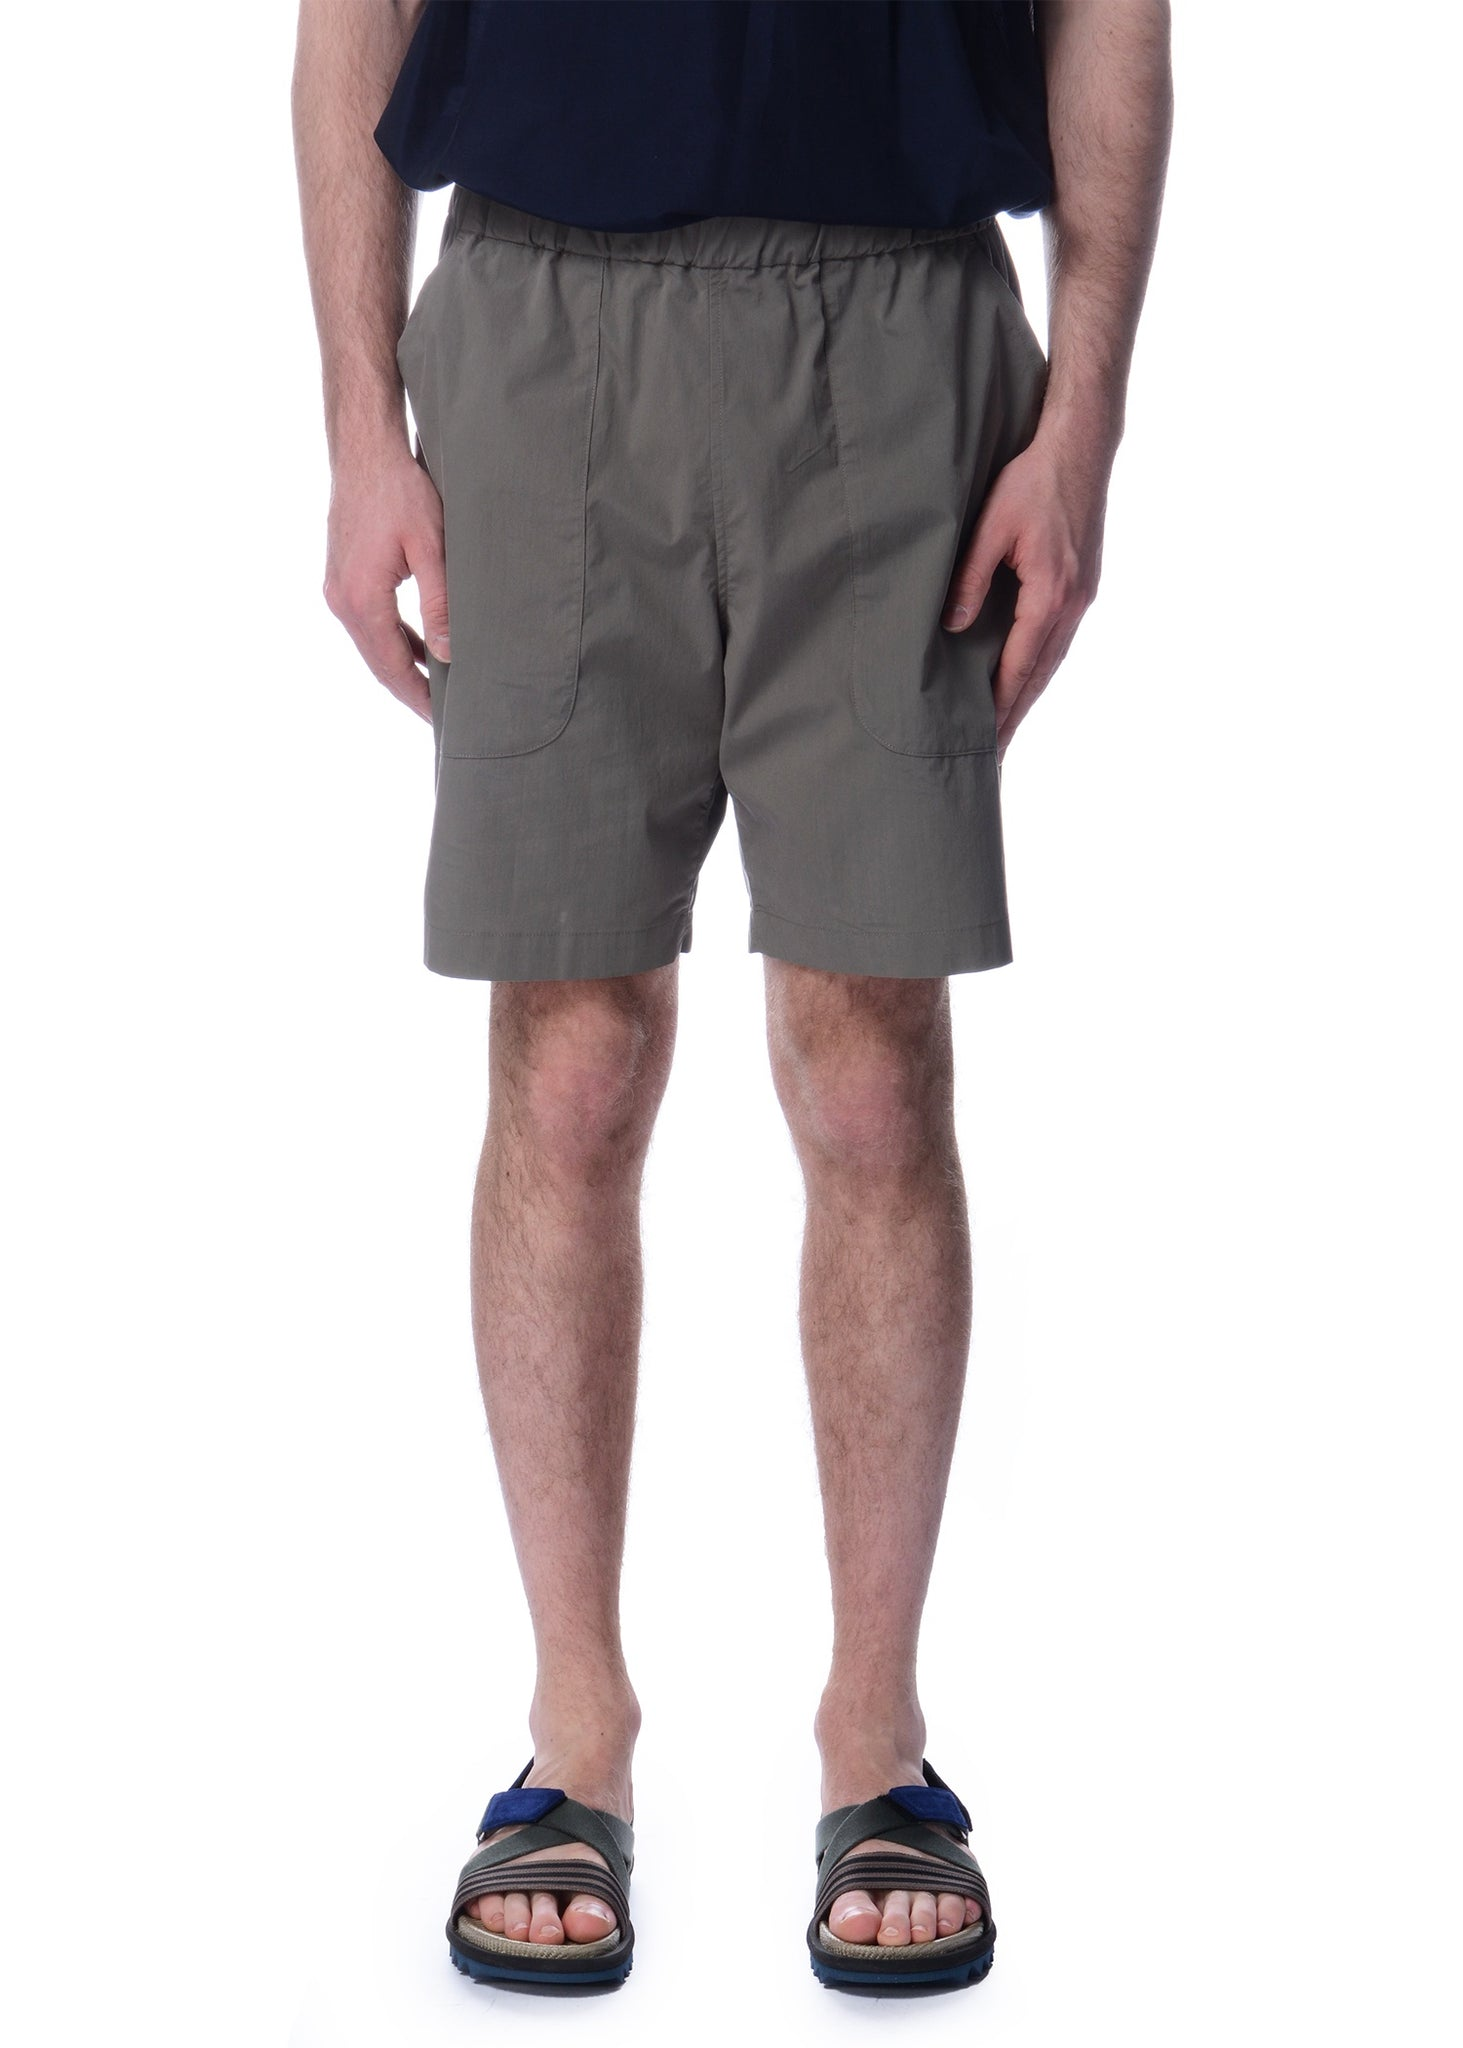 Short Ample Beige|Beige Relaxed Shorts